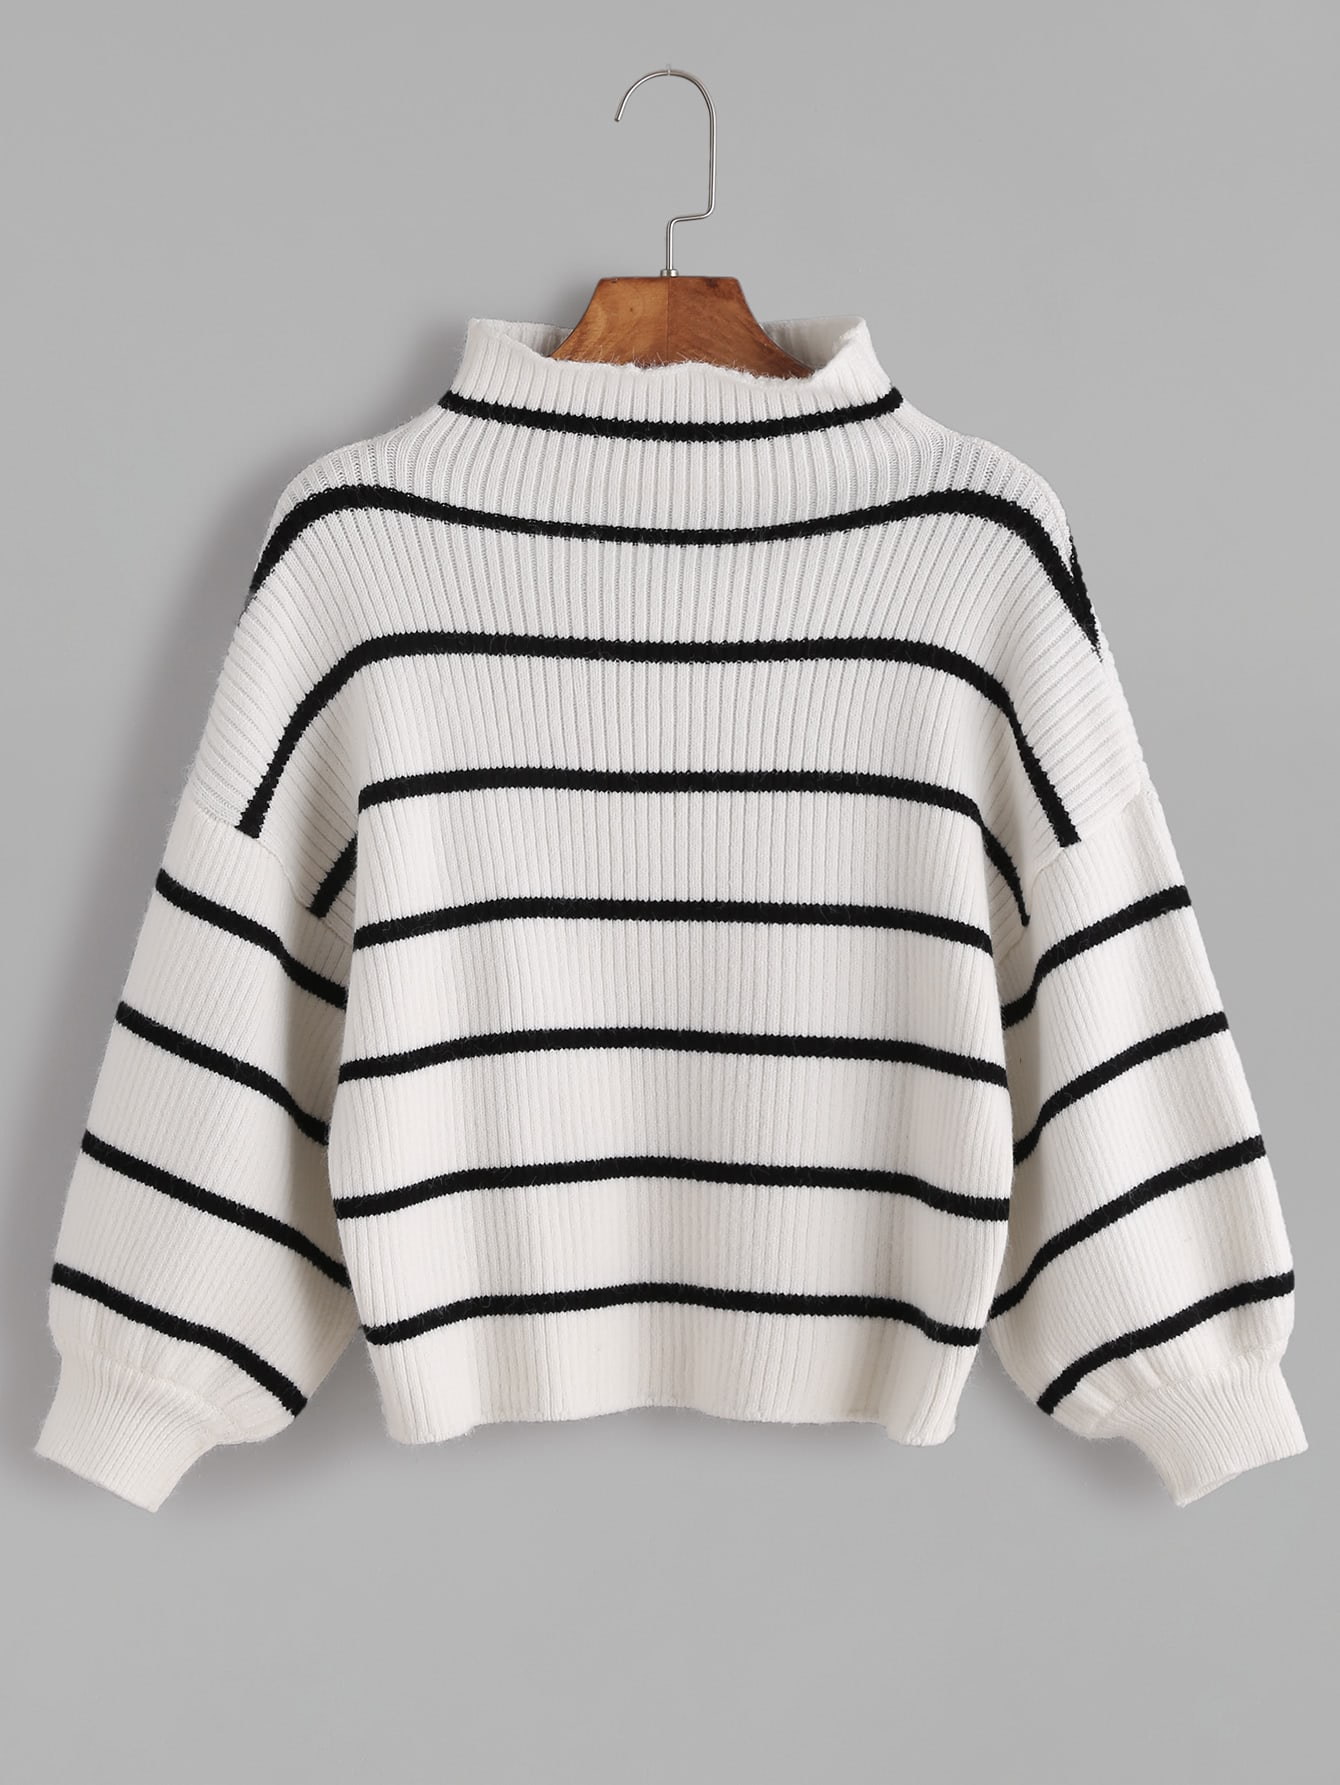 White Striped Ribbed Knit Funnel Neck Bishop Sleeve Sweater sweater161116405